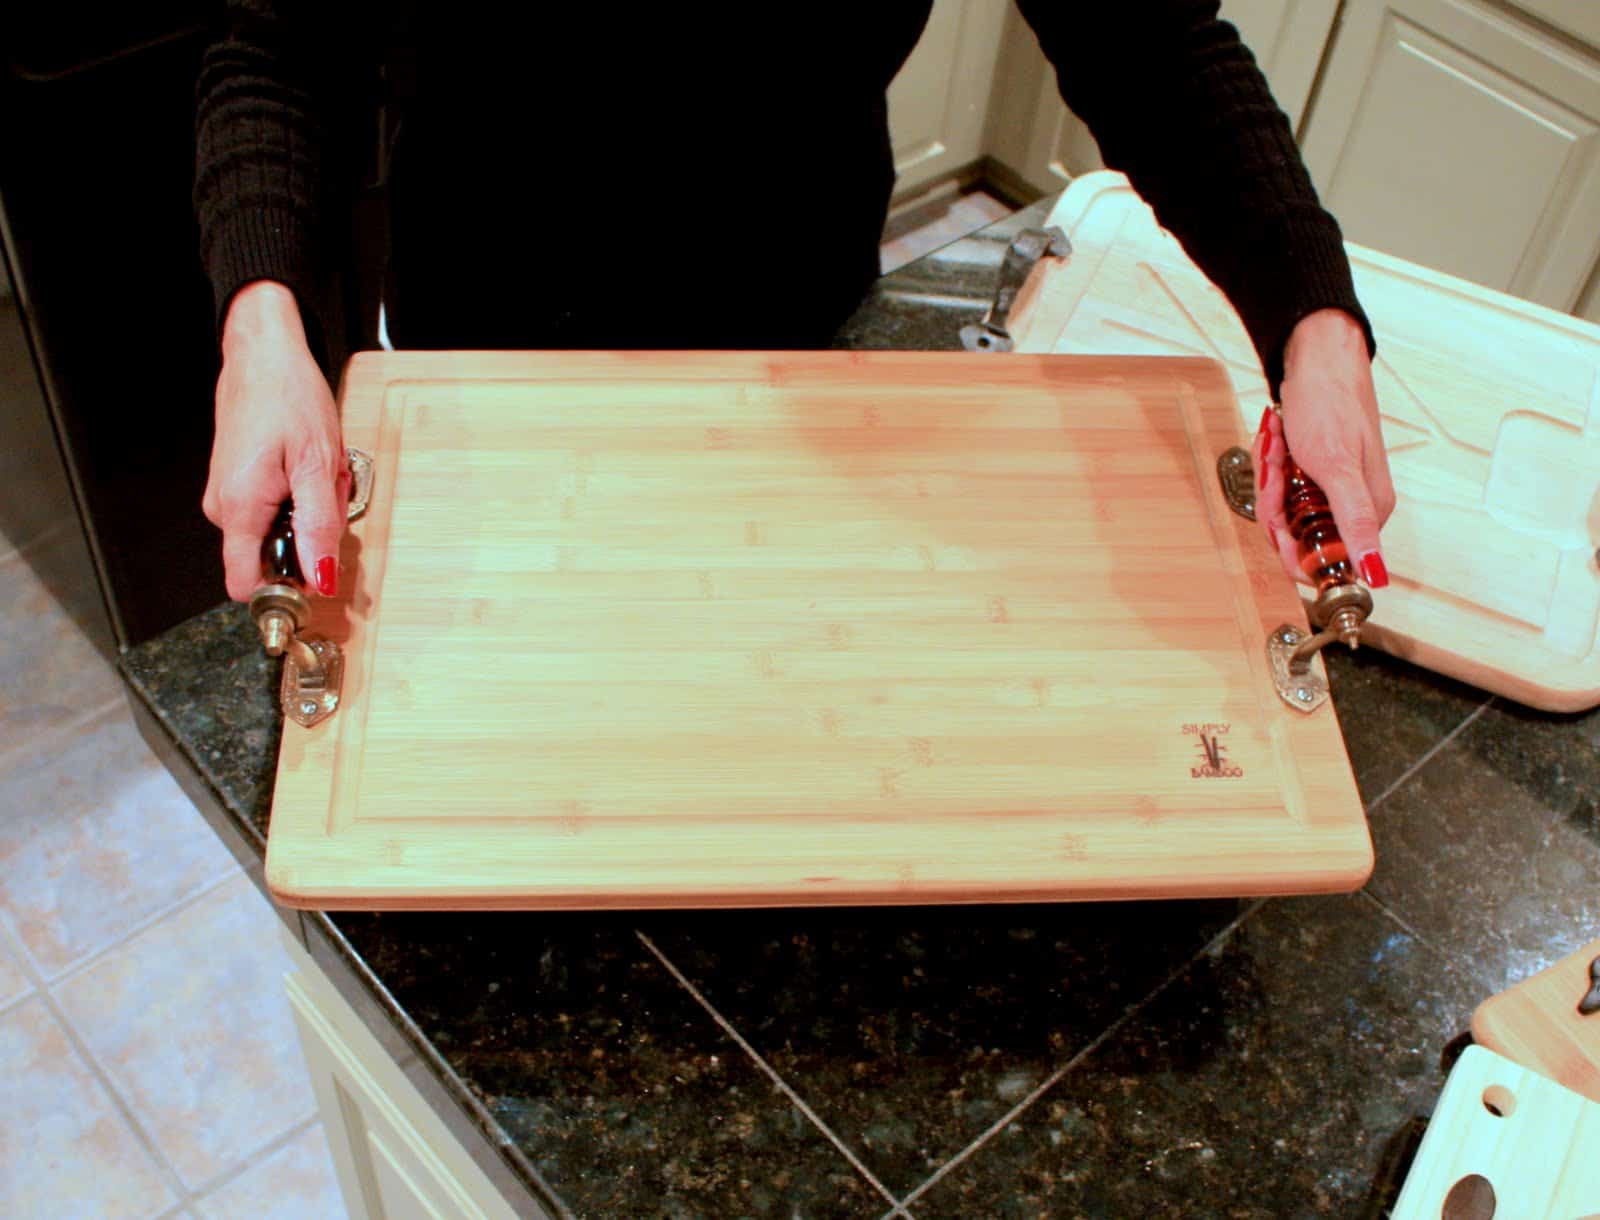 Tray cutting board